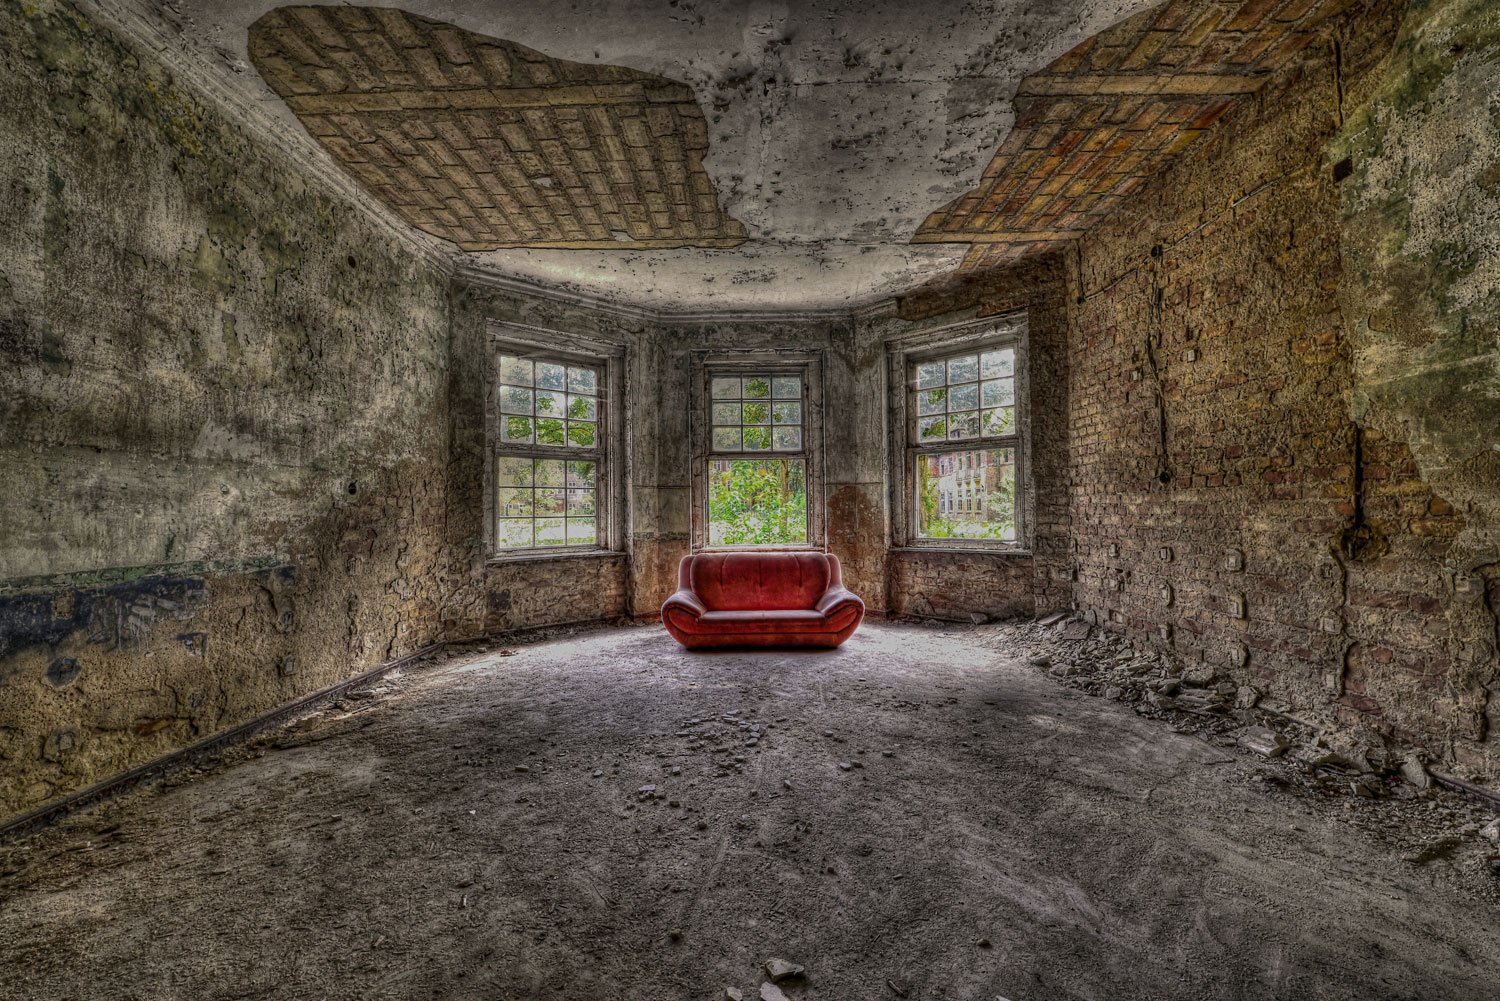 Rotes Sofa Hotel Lost Places In Berlin & Umgebung - Touren An Vergessene